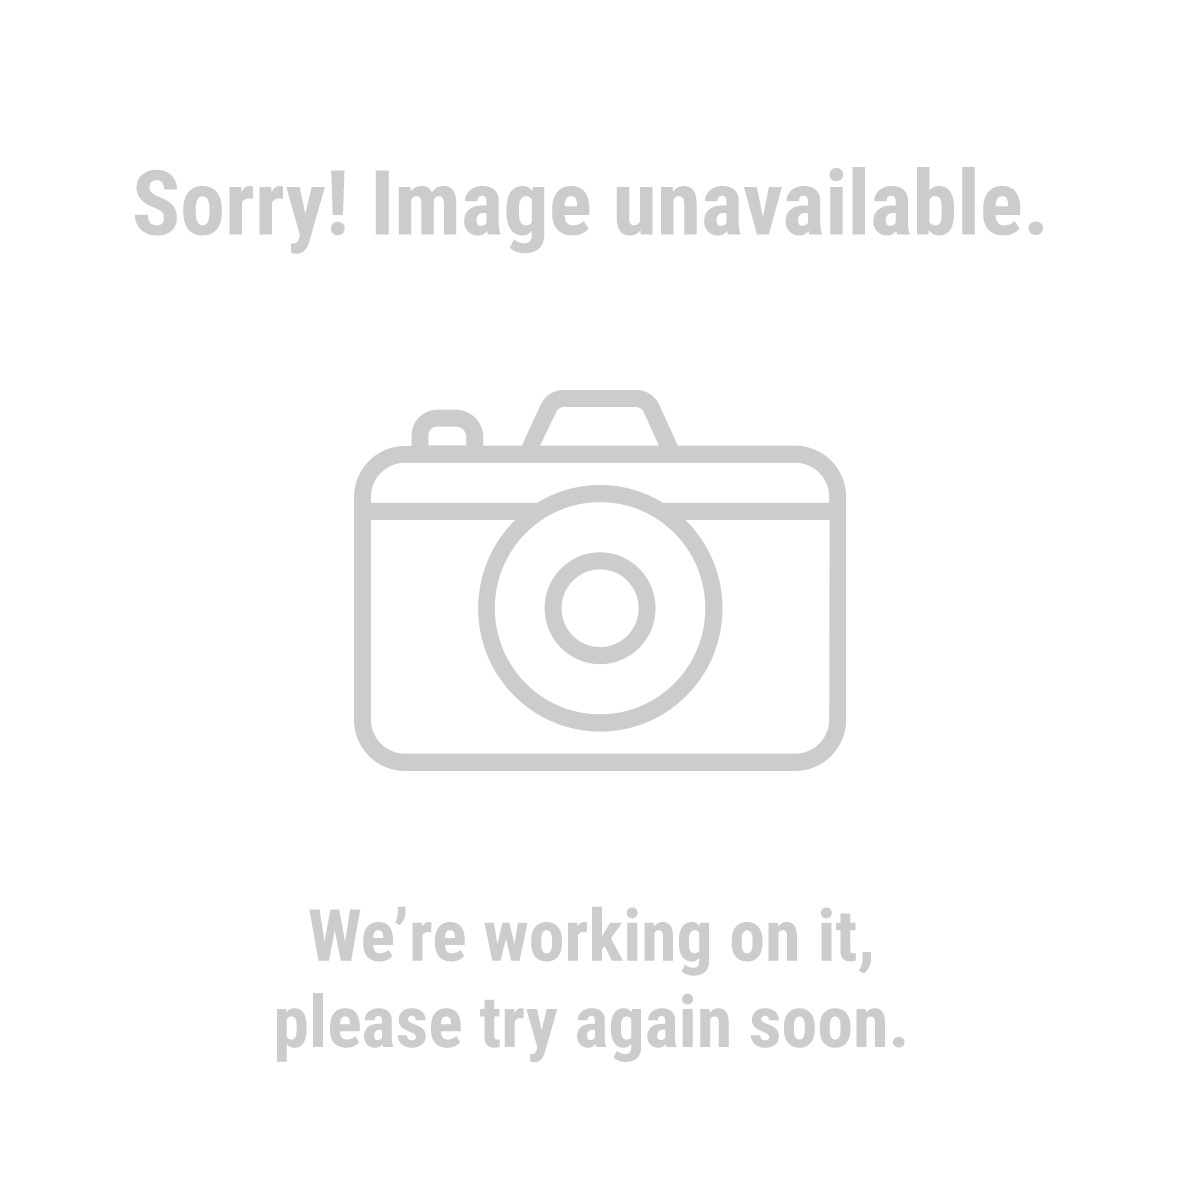 HFT 69126 5 ft. 6 in. x 7 ft. 6 in. Silver/Heavy Duty Reflective All Purpose/Weather Resistant Tarp